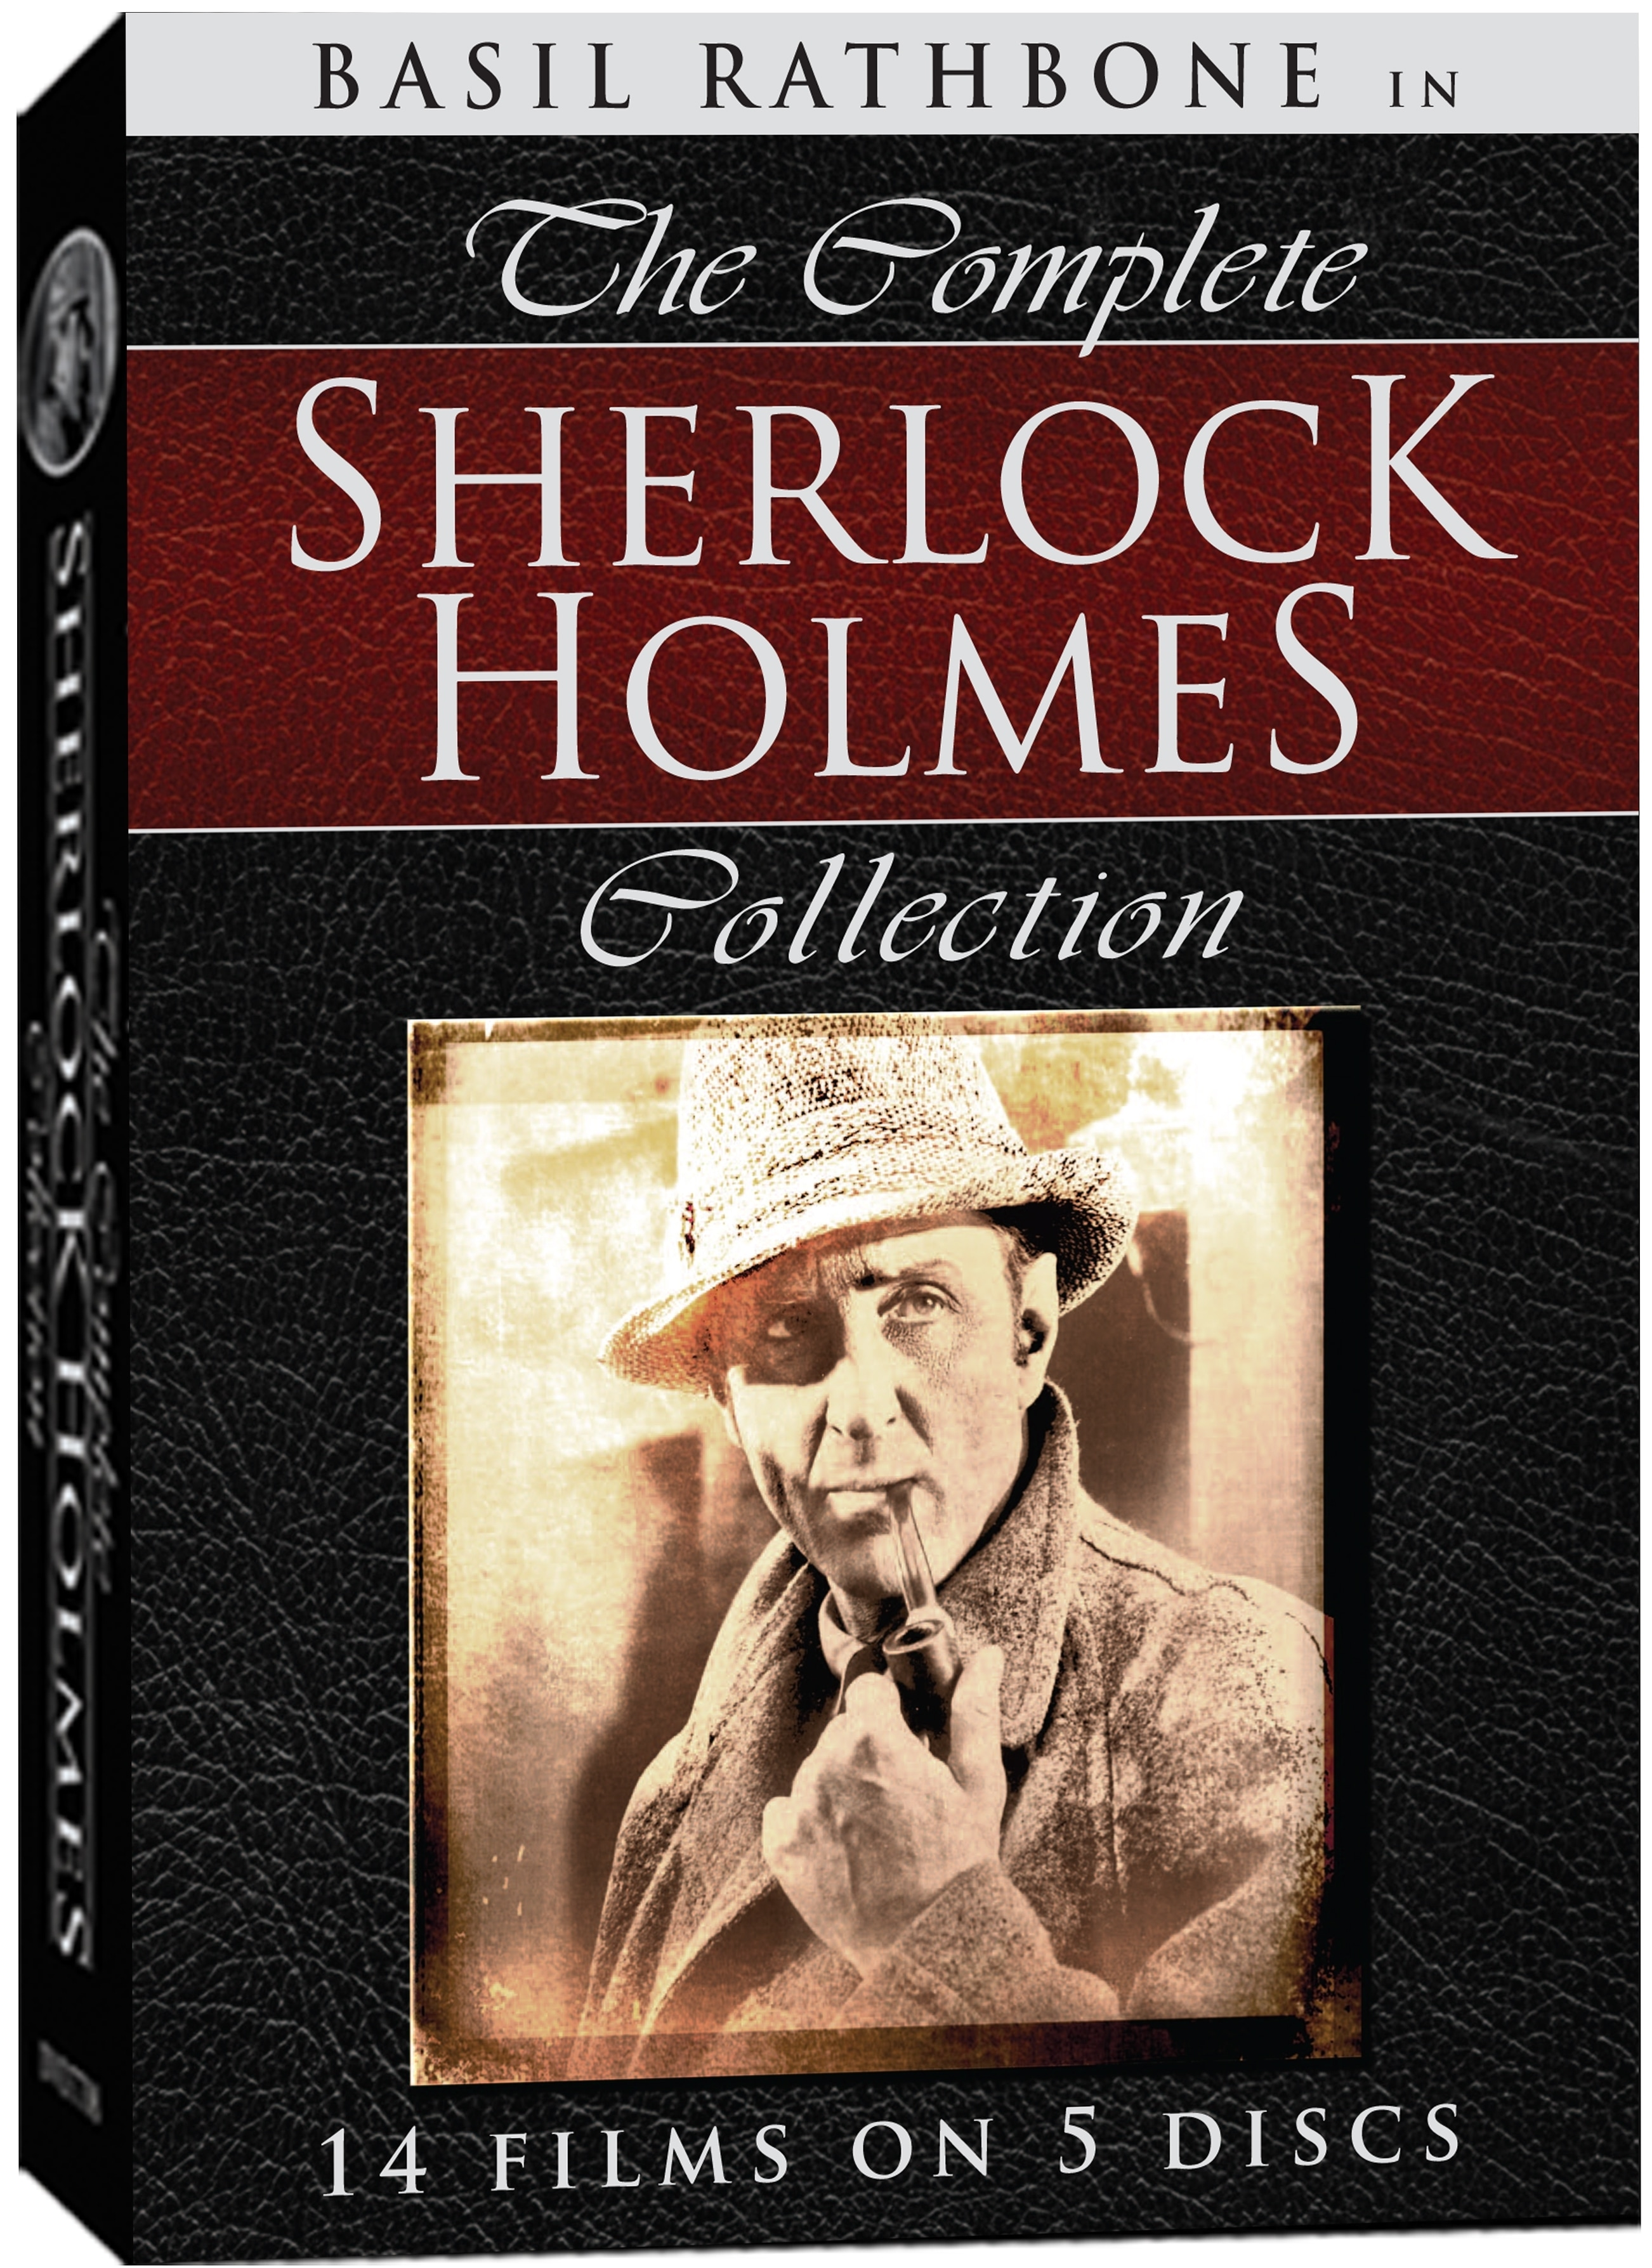 The Complete Sherlock Holmes Collection (DVD)